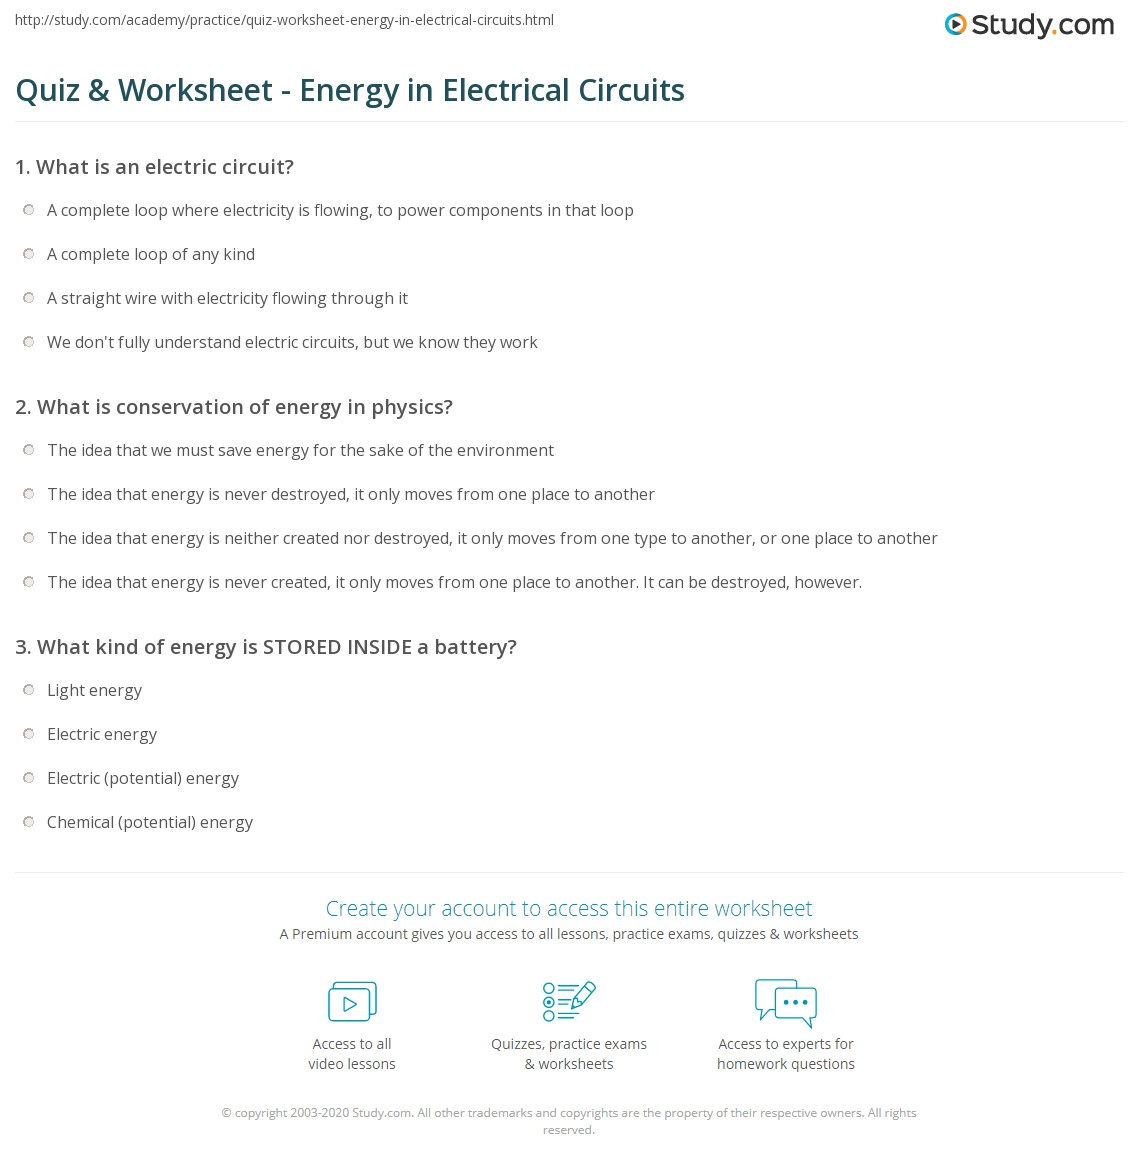 Quiz & Worksheet - Energy in Electrical Circuits | Study.com